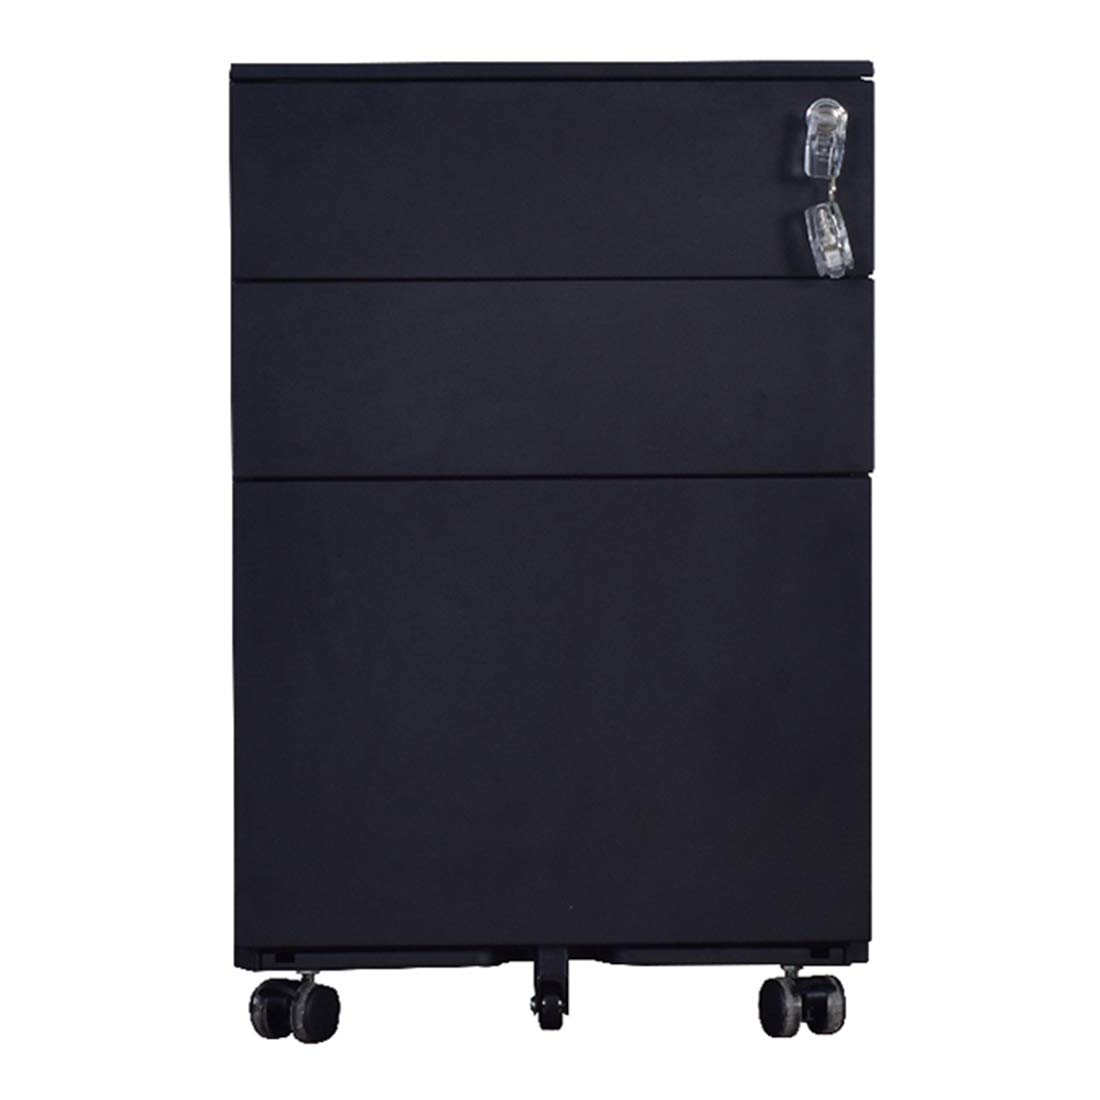 GREATMEET Metal 3 Drawer Mobile Filing Cabinet A4 F4 Storage with Wheel Disassembled Black